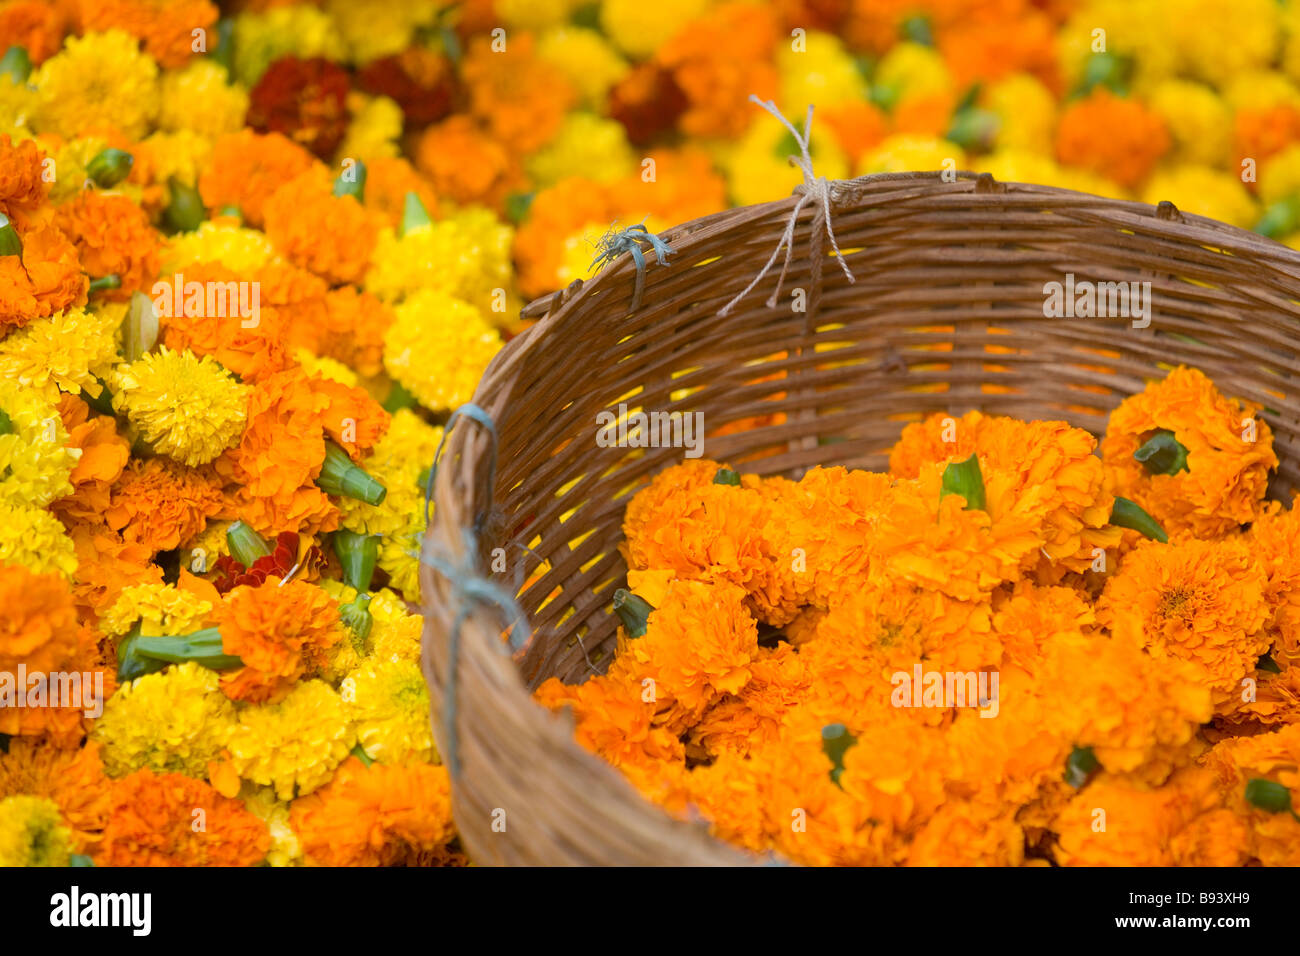 d84b7e9d9e0 Marigold heads for sale used for Hindu Puja/holy ceremonies at the flower  market Kolkata, or Calcutta, West Bengal, India